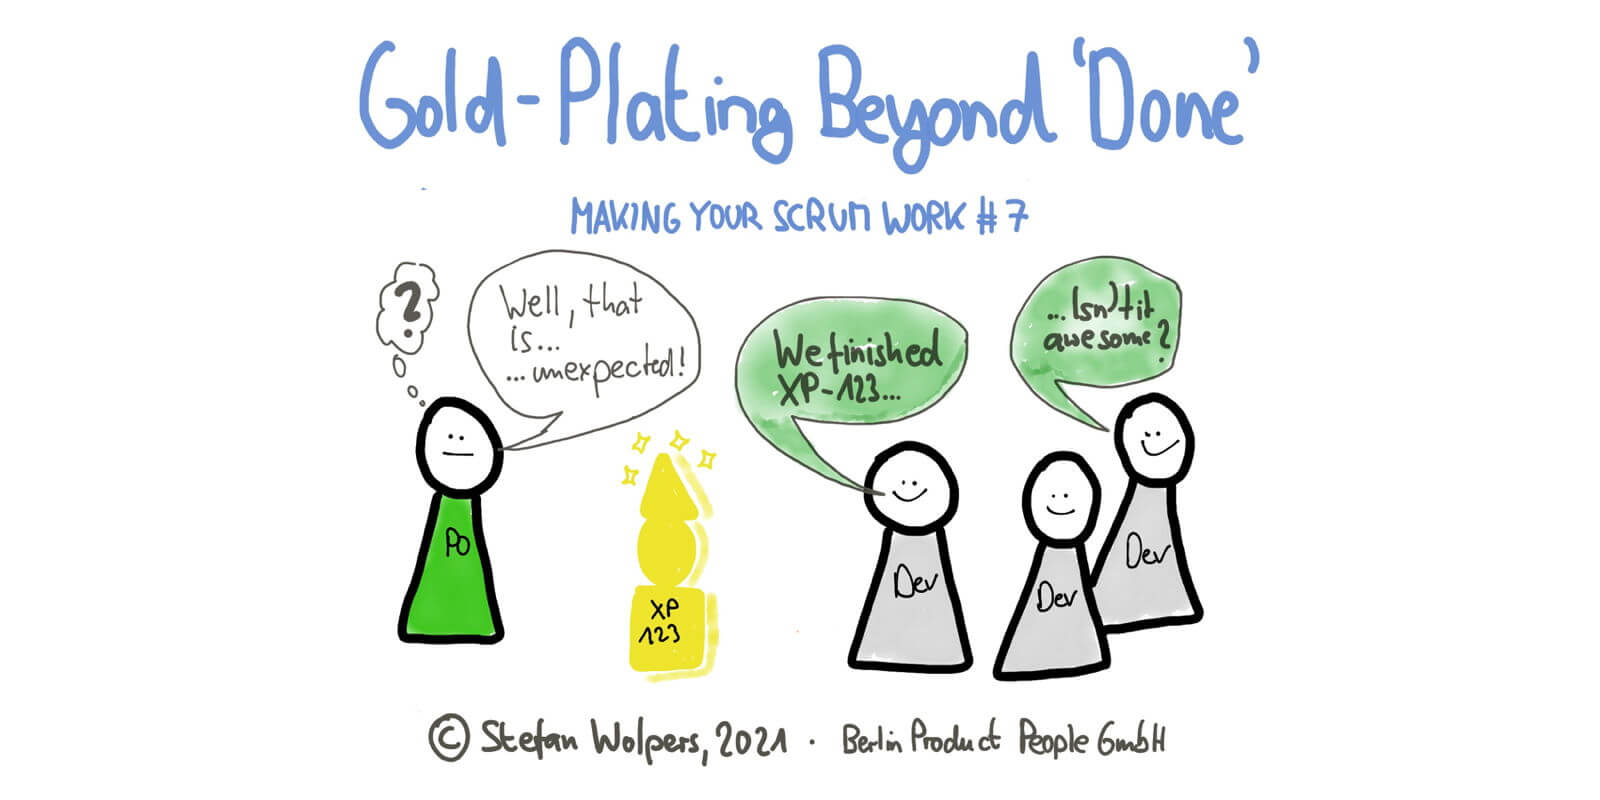 Gold-Plating Beyond Done — Making Your Scrum Work #7